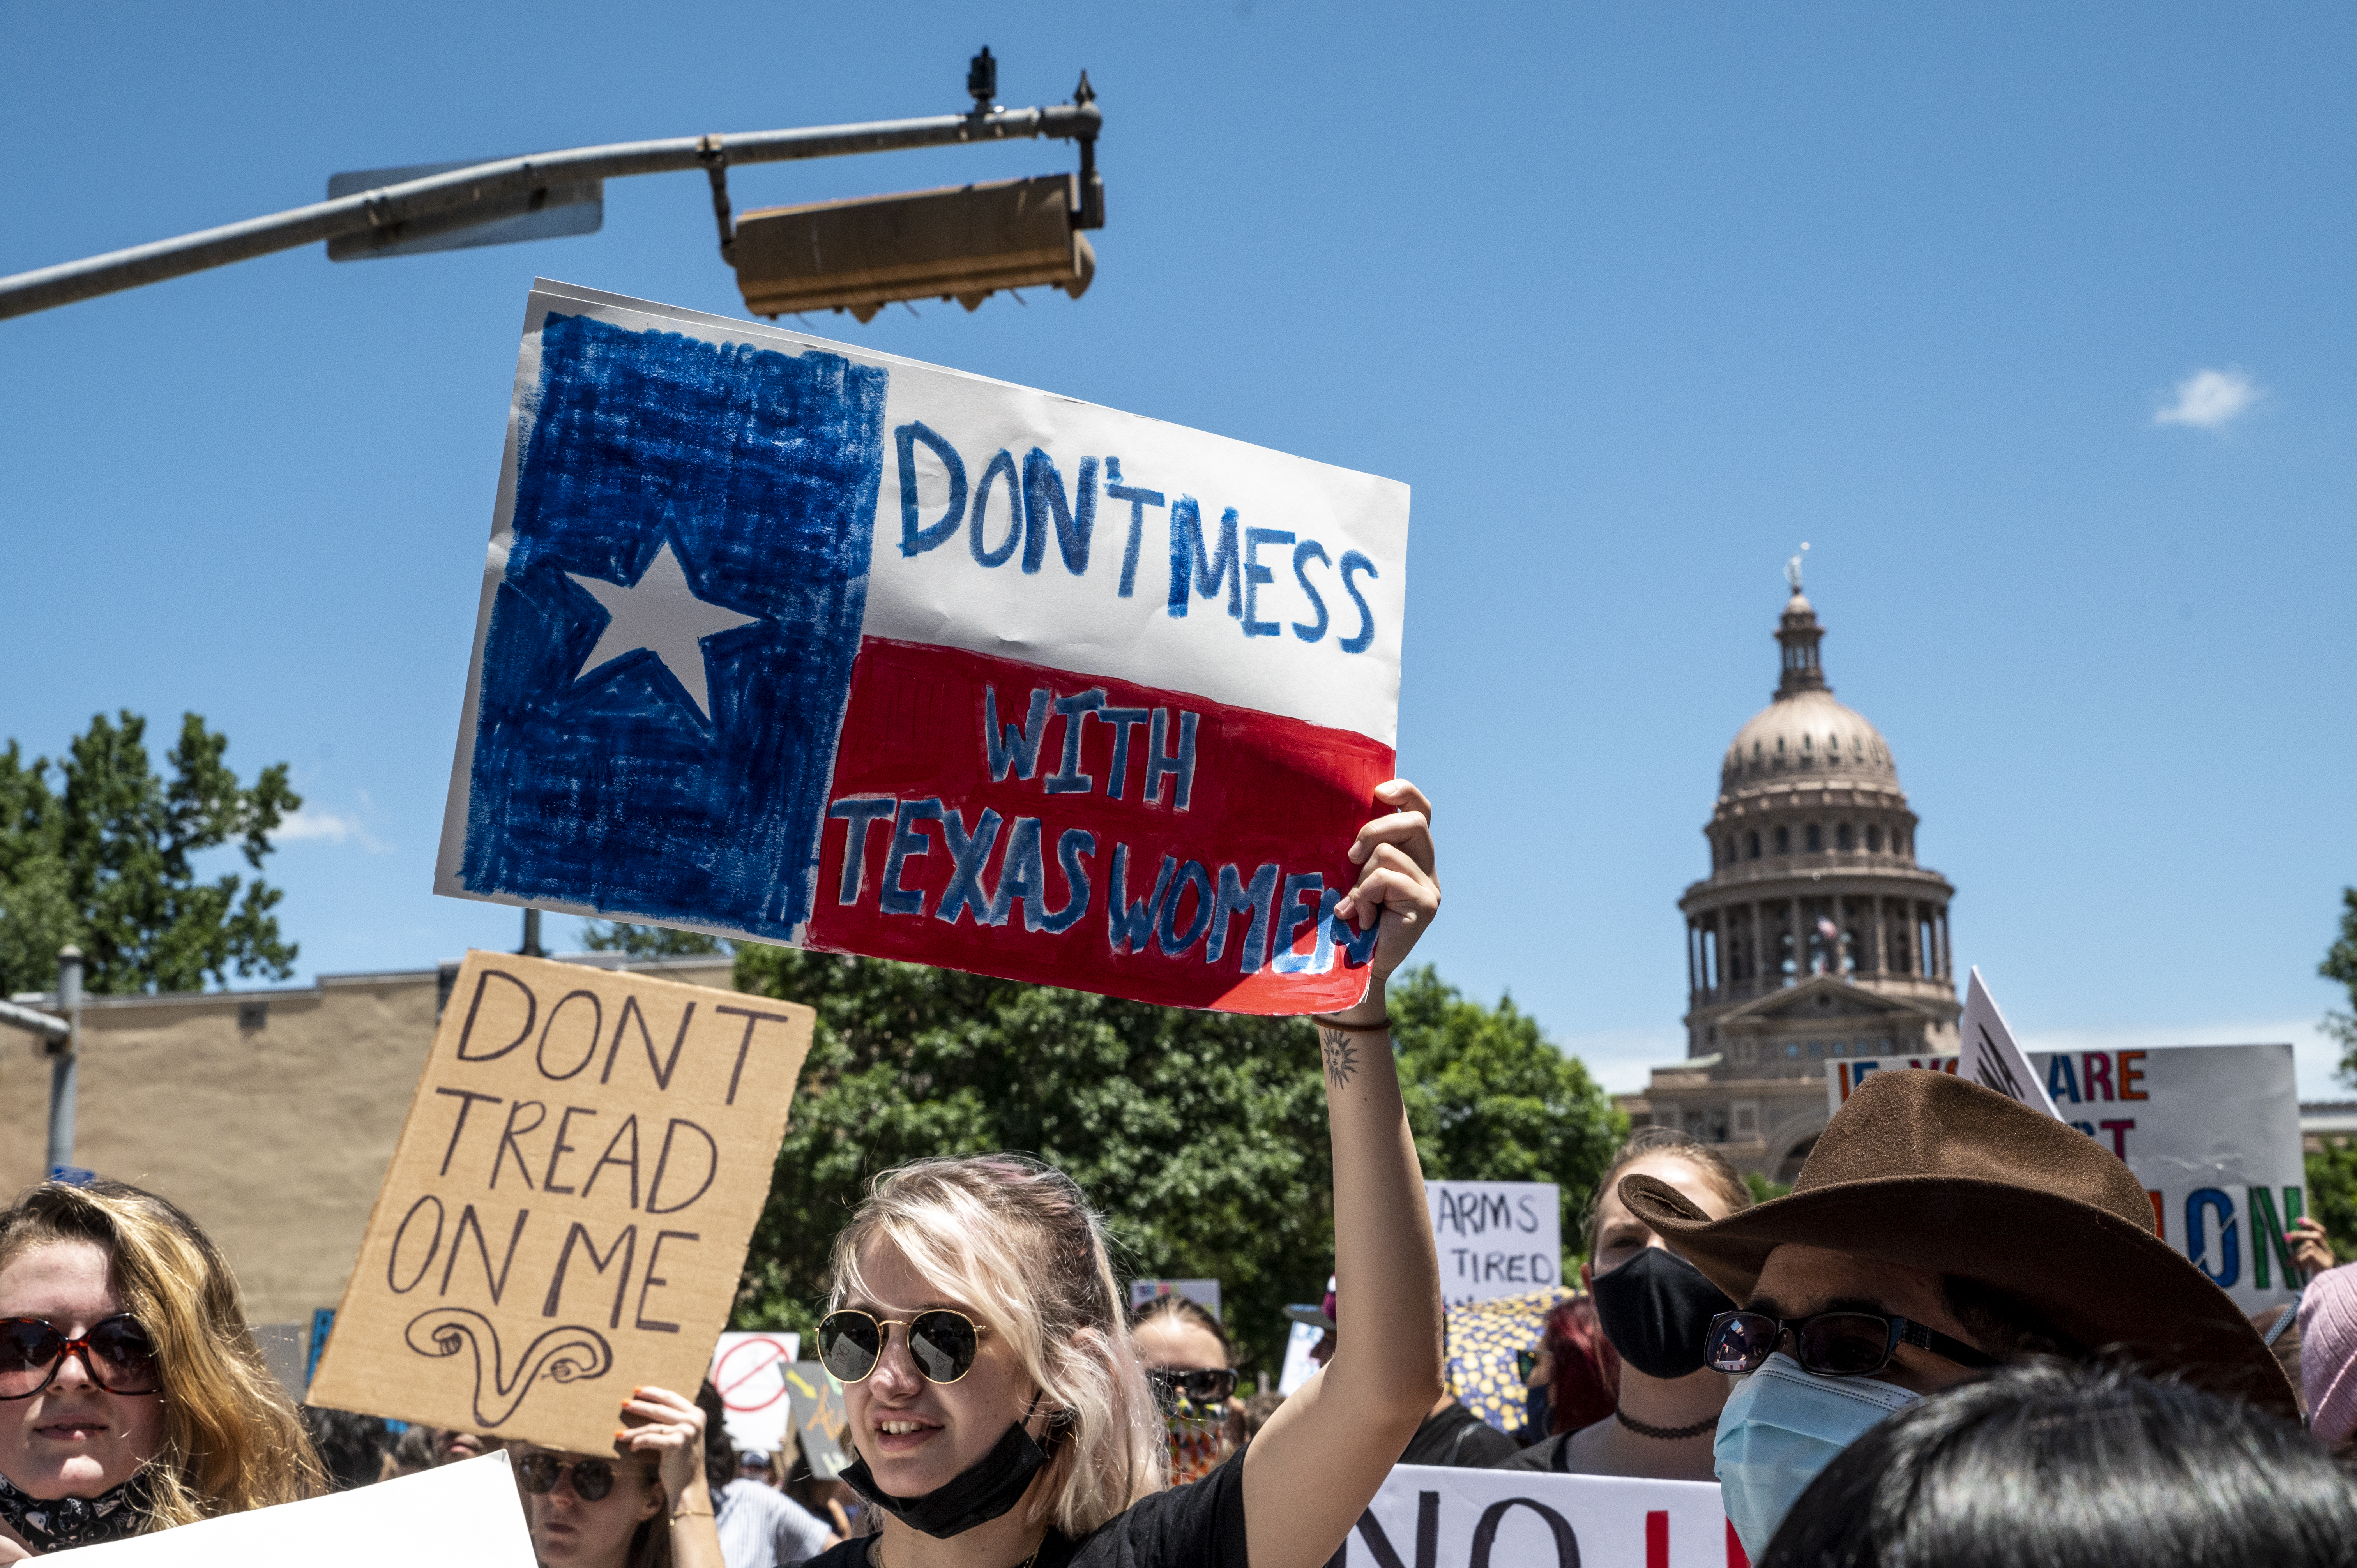 """A young woman holding a """"don't mess with Texas women"""" sign at a protest."""